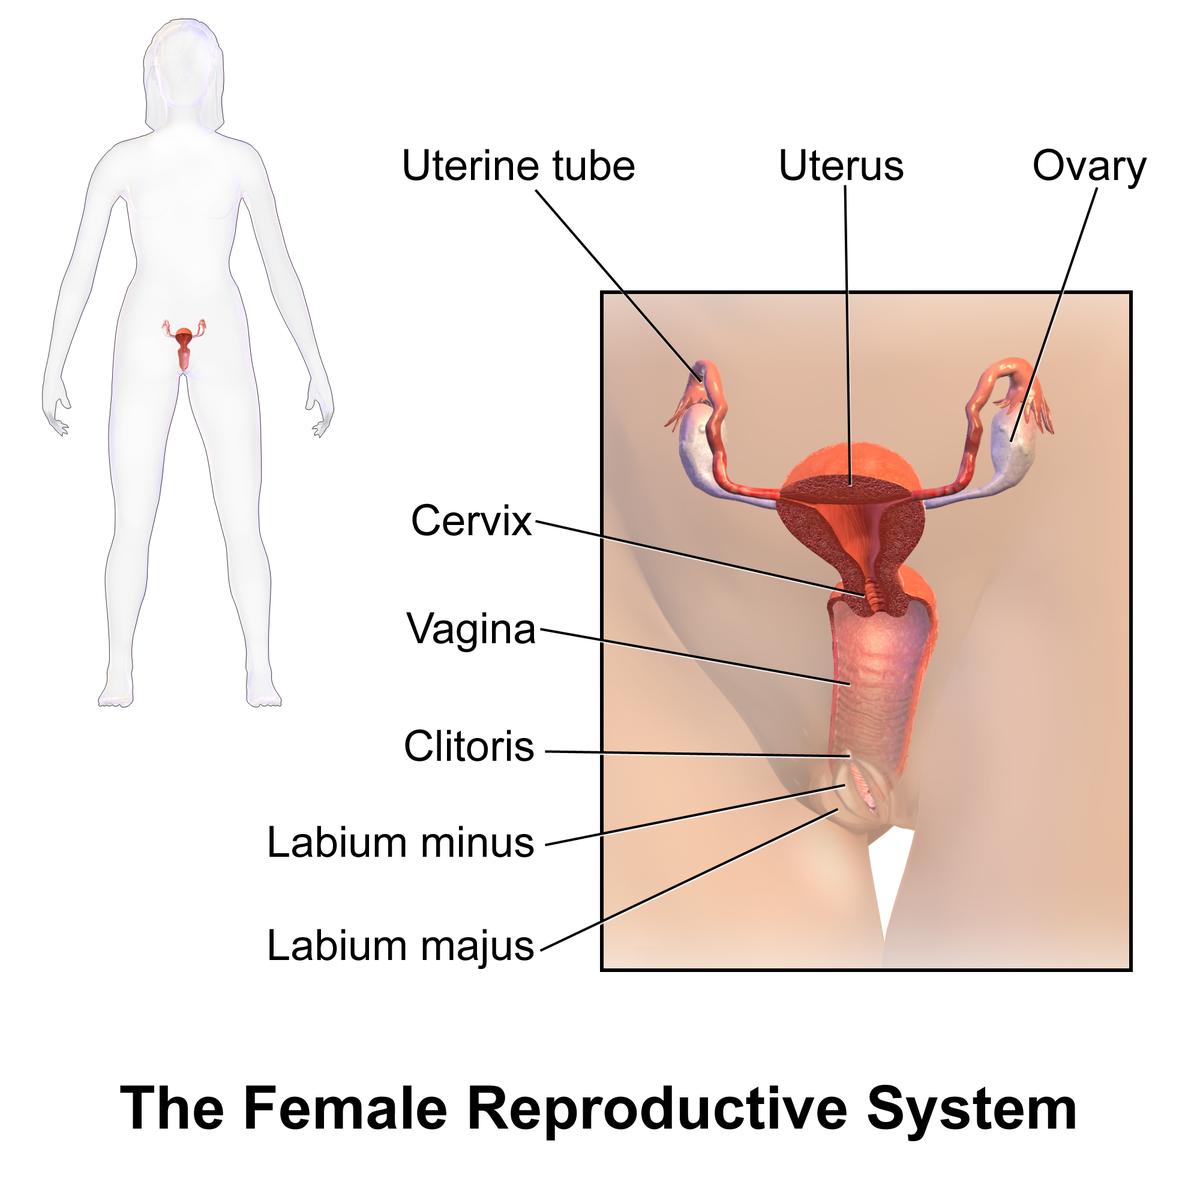 Female reproductive system - Wikipedia